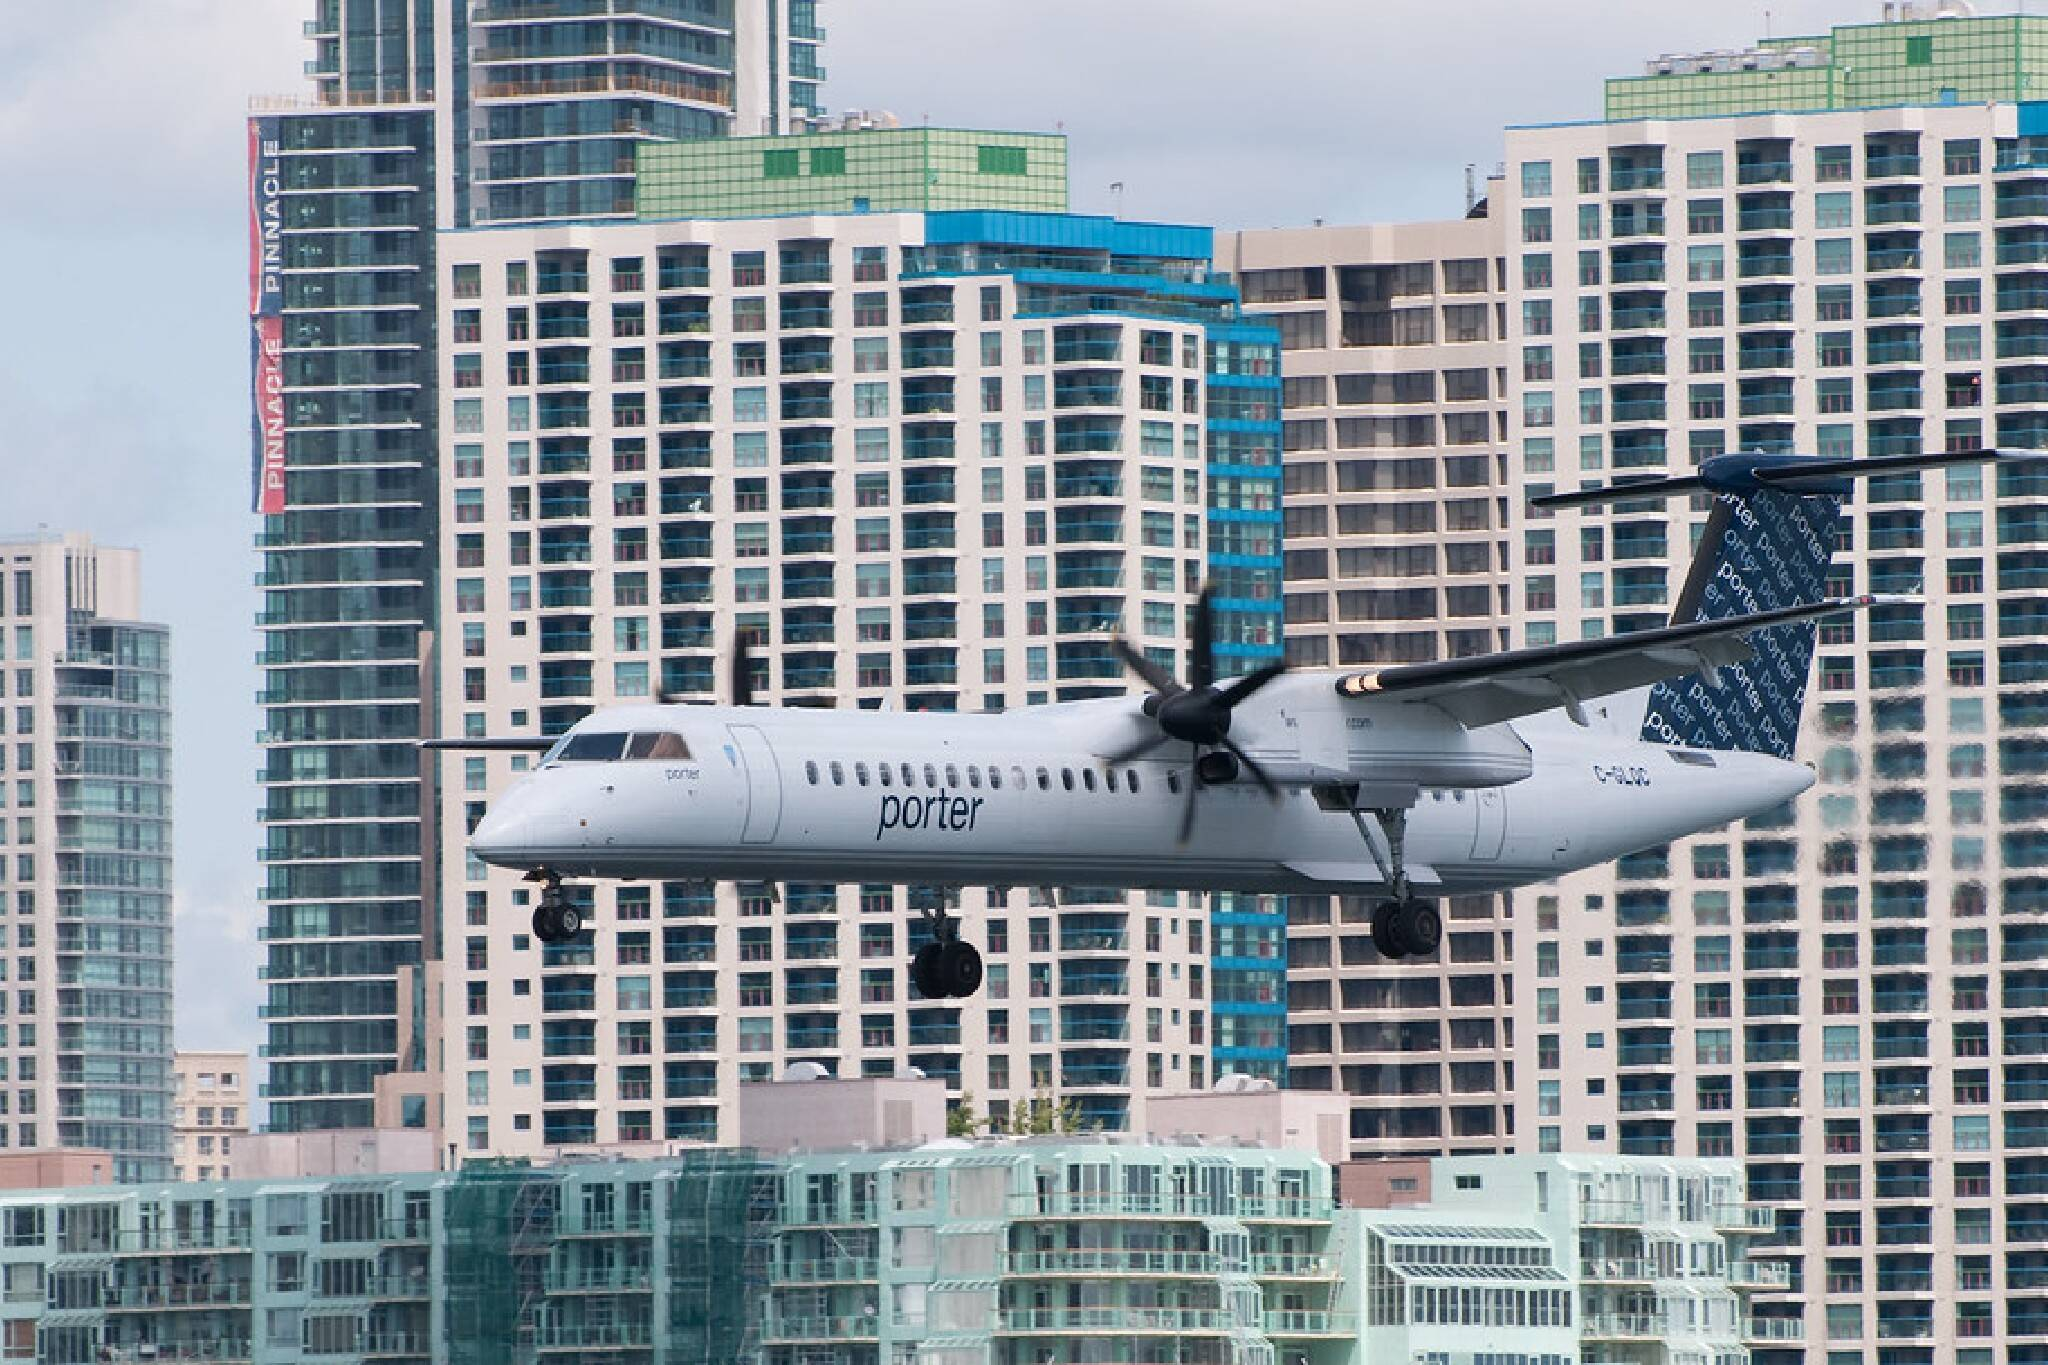 porter airlines news